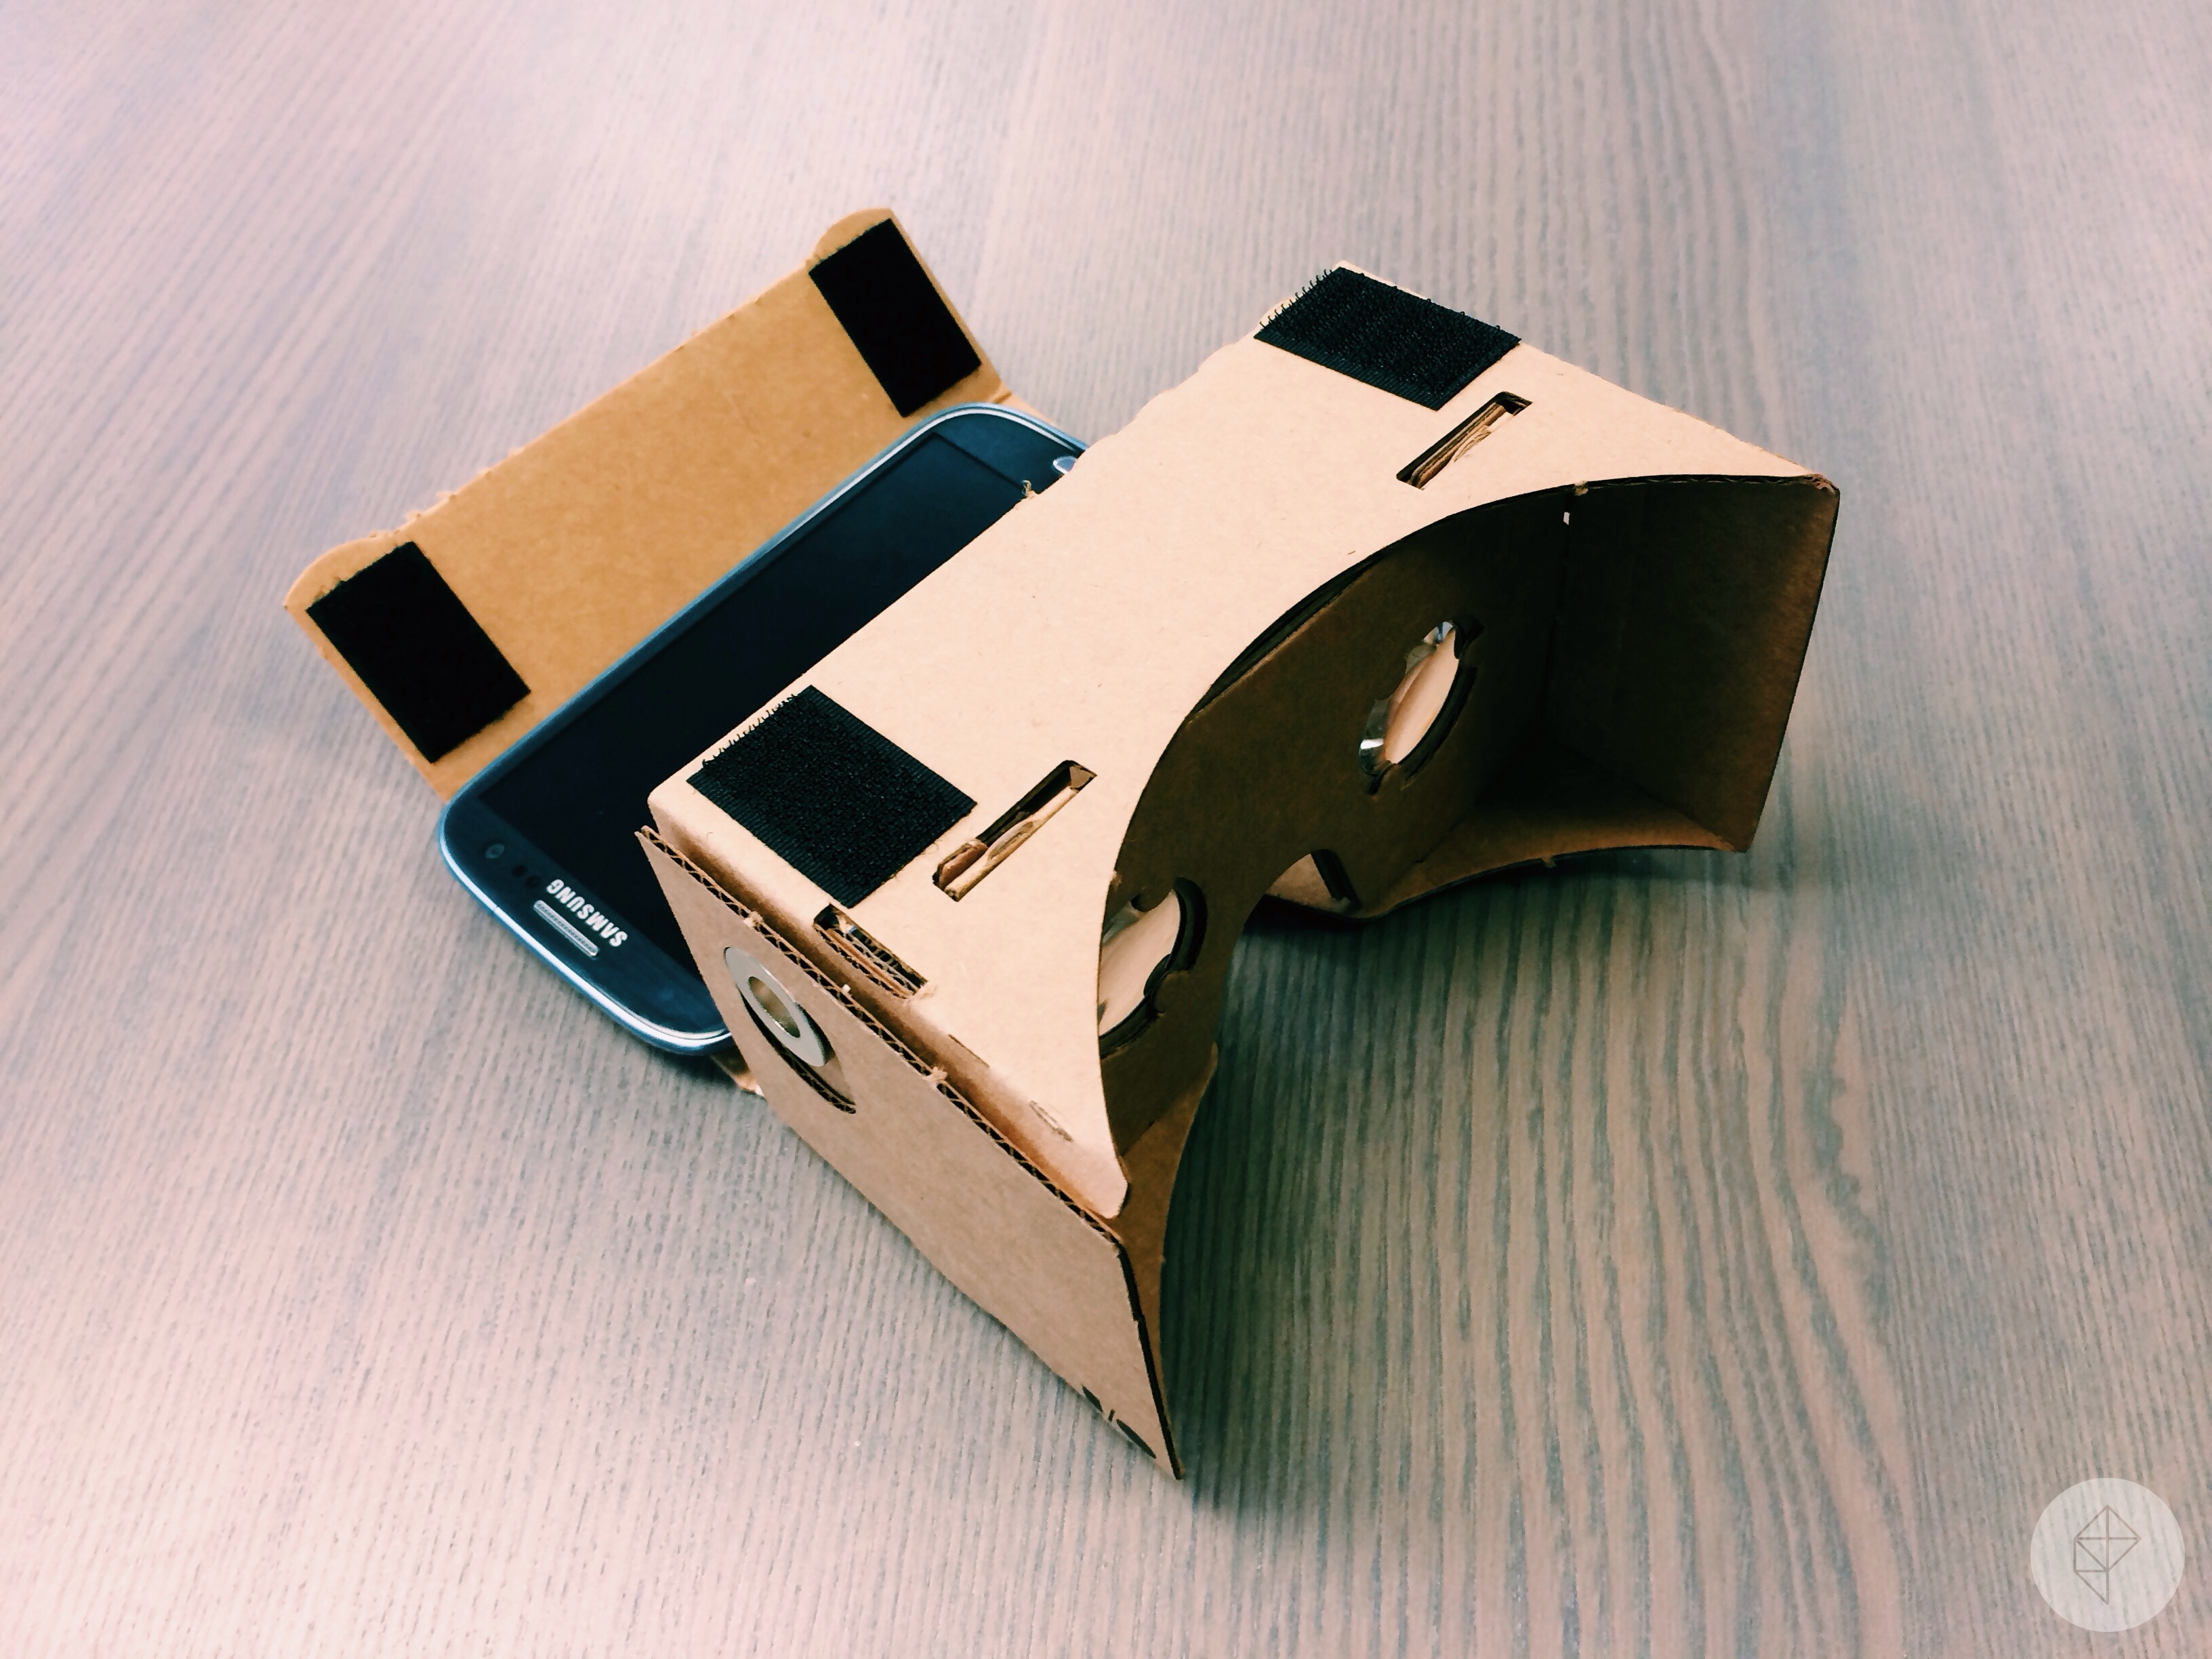 How To Make A Vr Headset With A Pizza Box Smartphone And